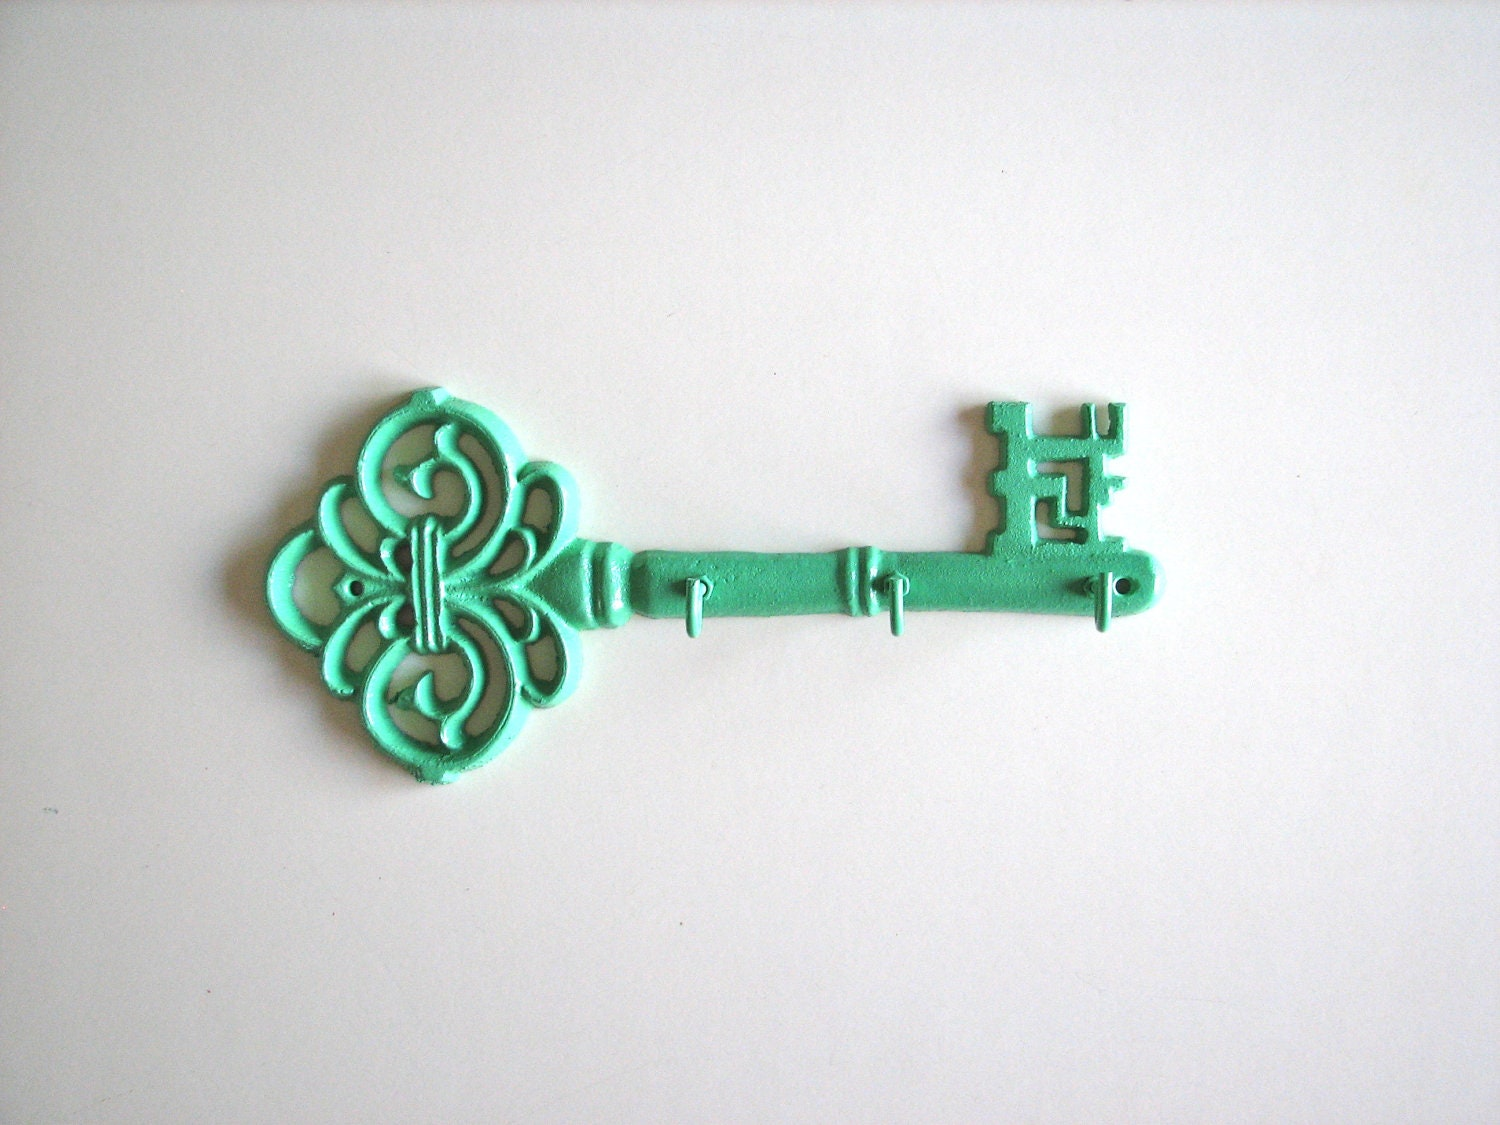 Fancy Key Key Rack Holder In Pistachio Green